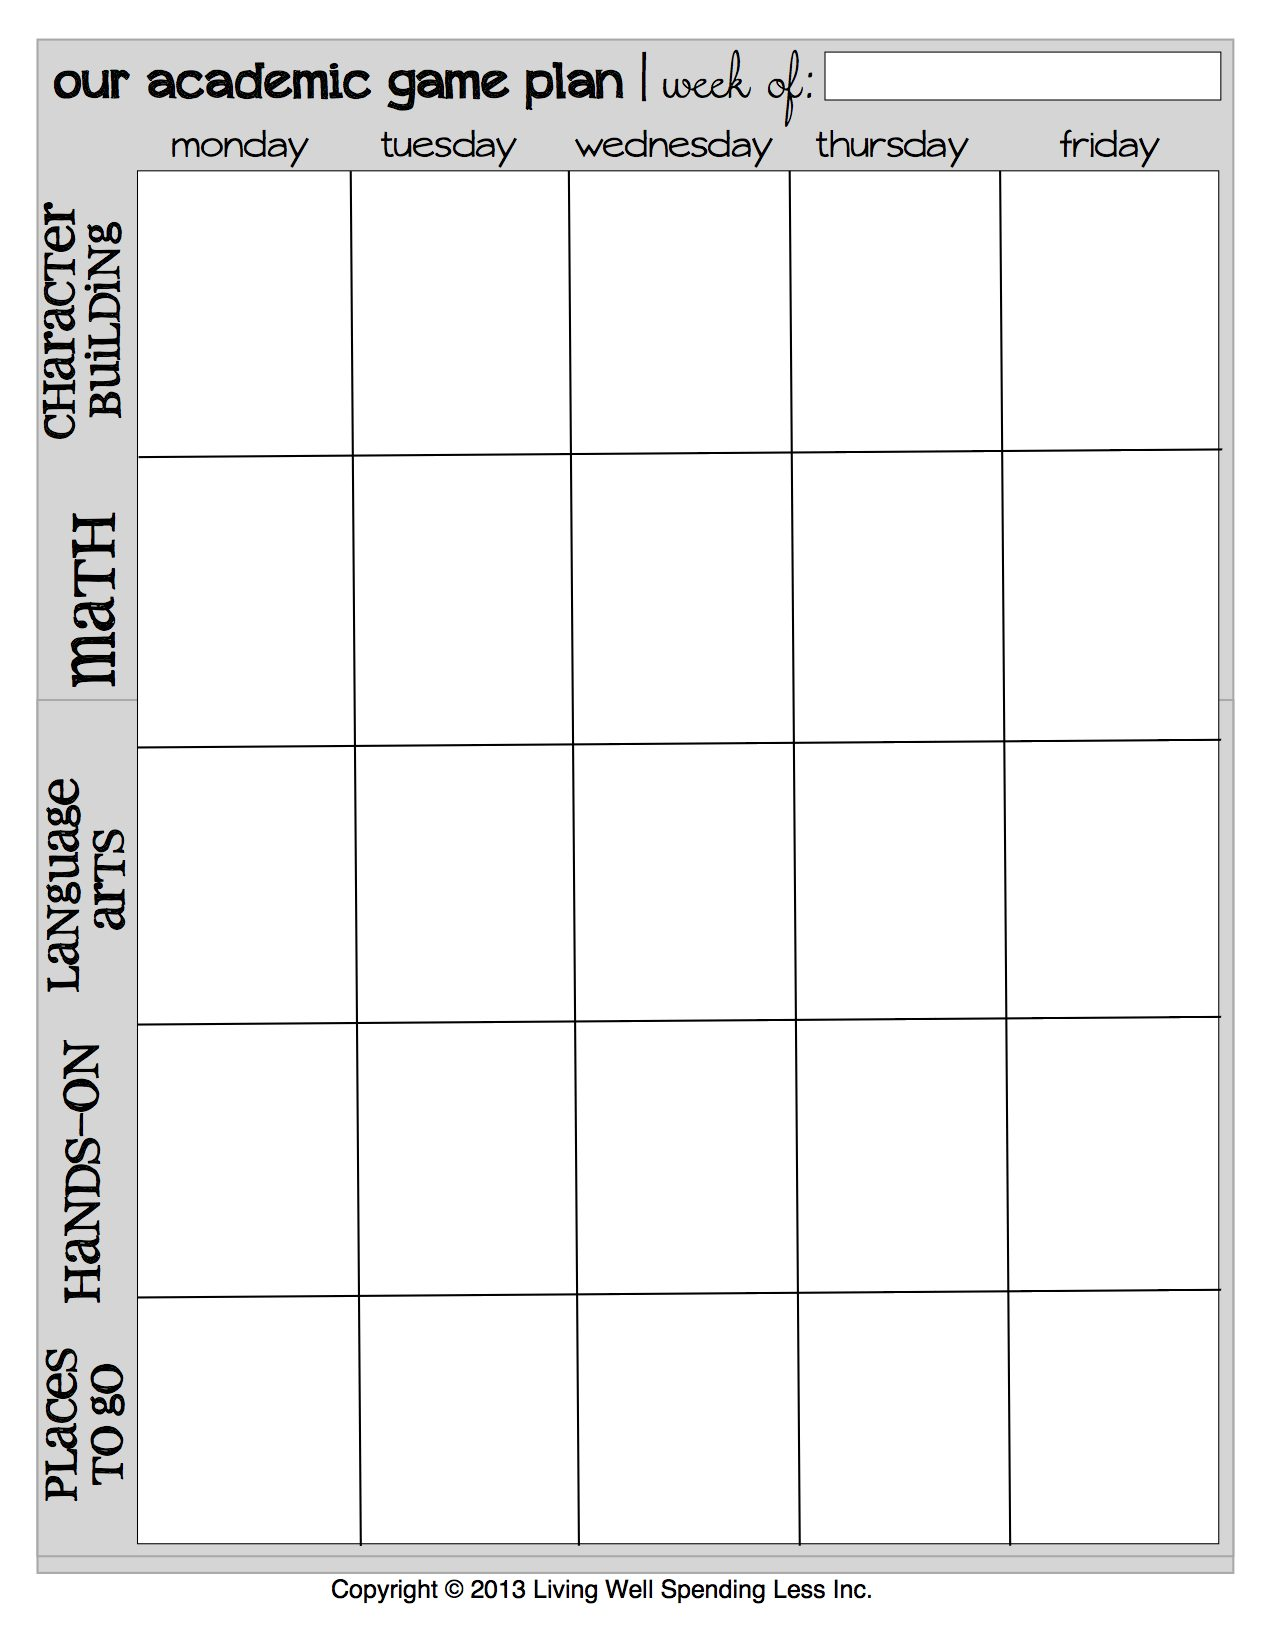 Schedule Printable Images Gallery Category Page 7